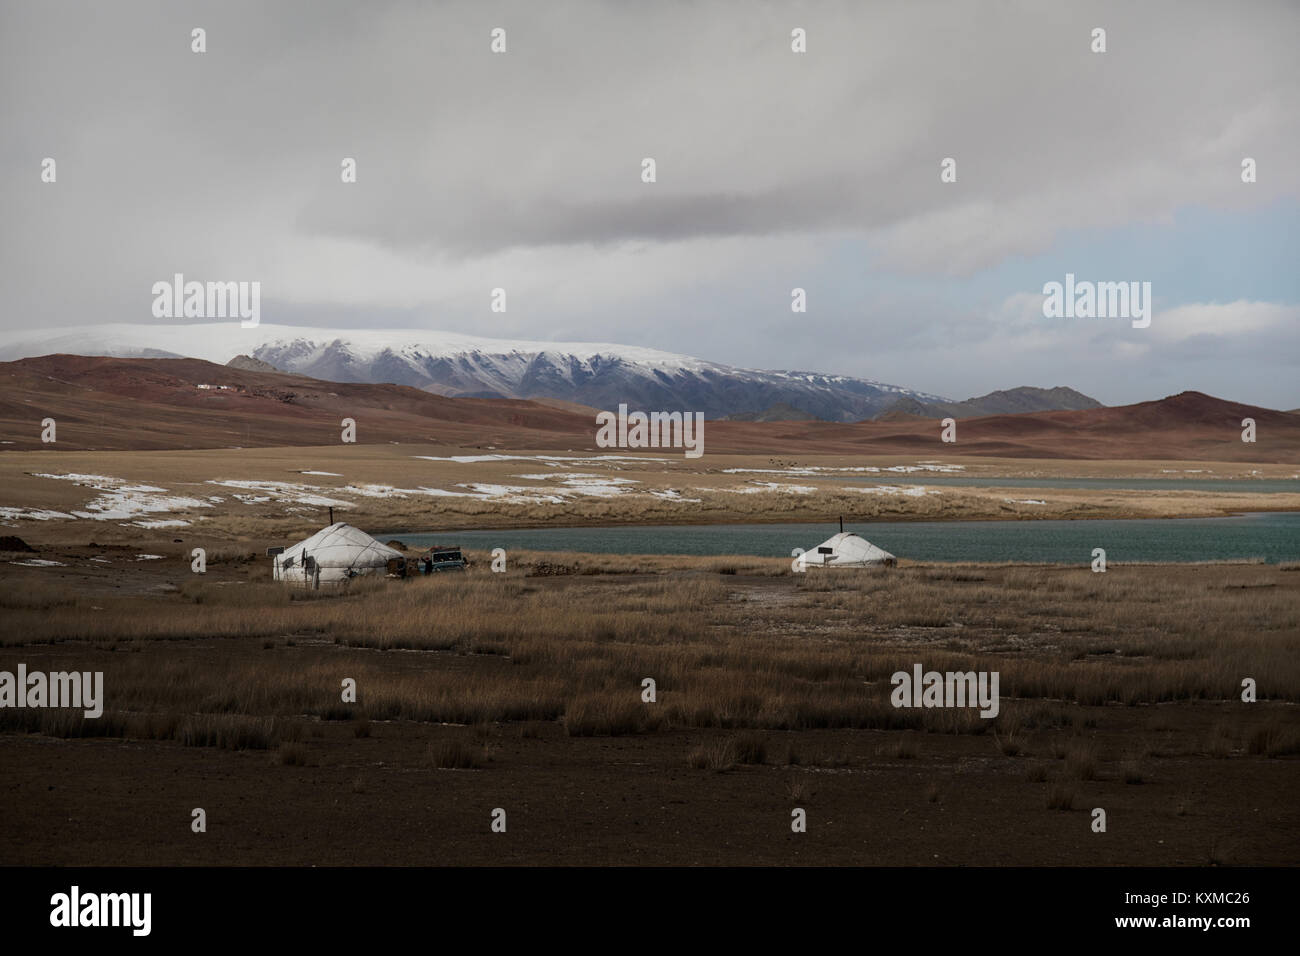 Mongolia gers winter lake snowy mountains cloudy grasslands steppes Mongolian - Stock Image